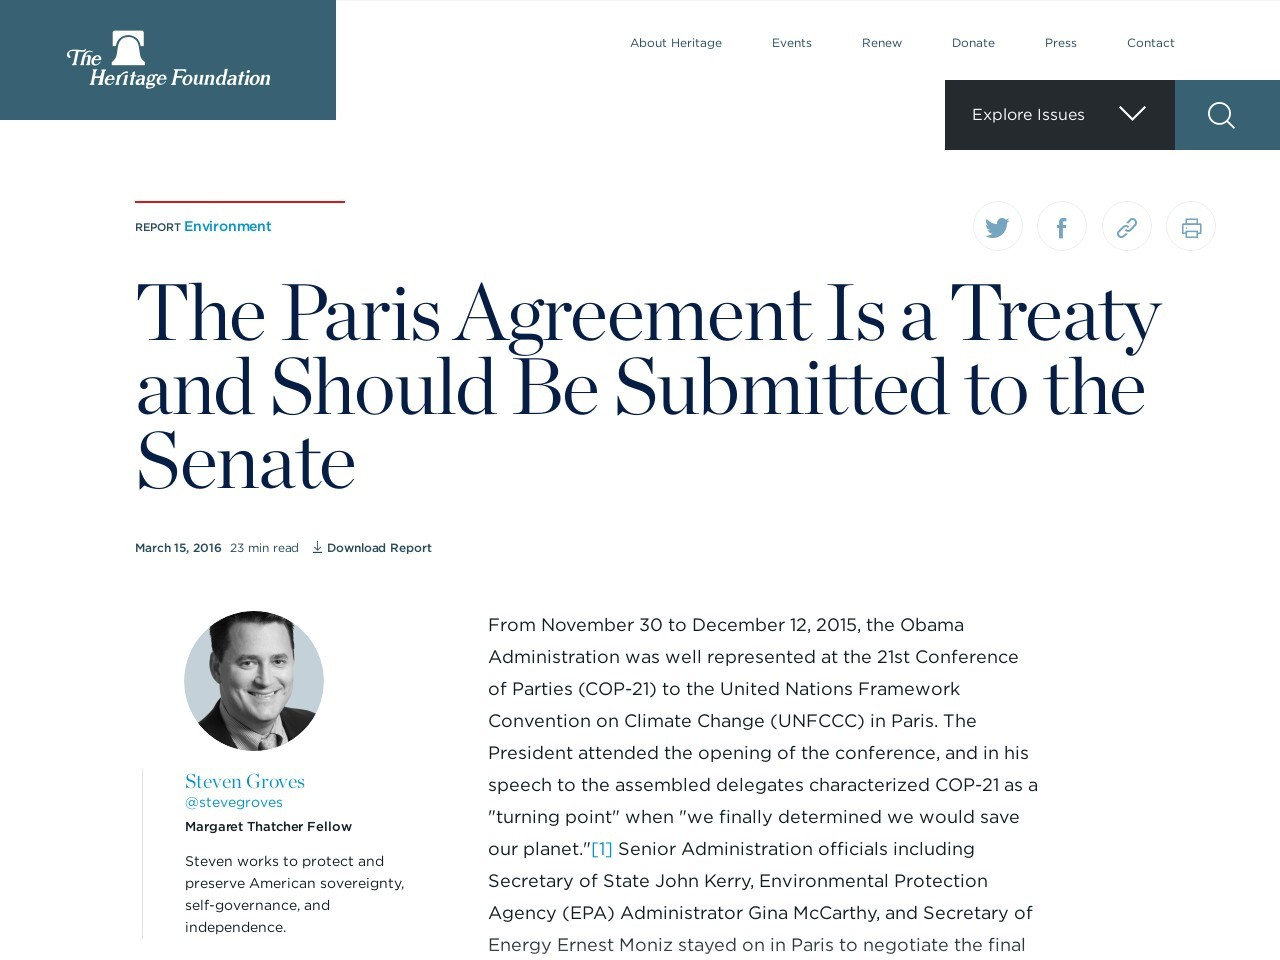 The Paris Agreement Is a Treaty and Should Be Submitted to the Senate